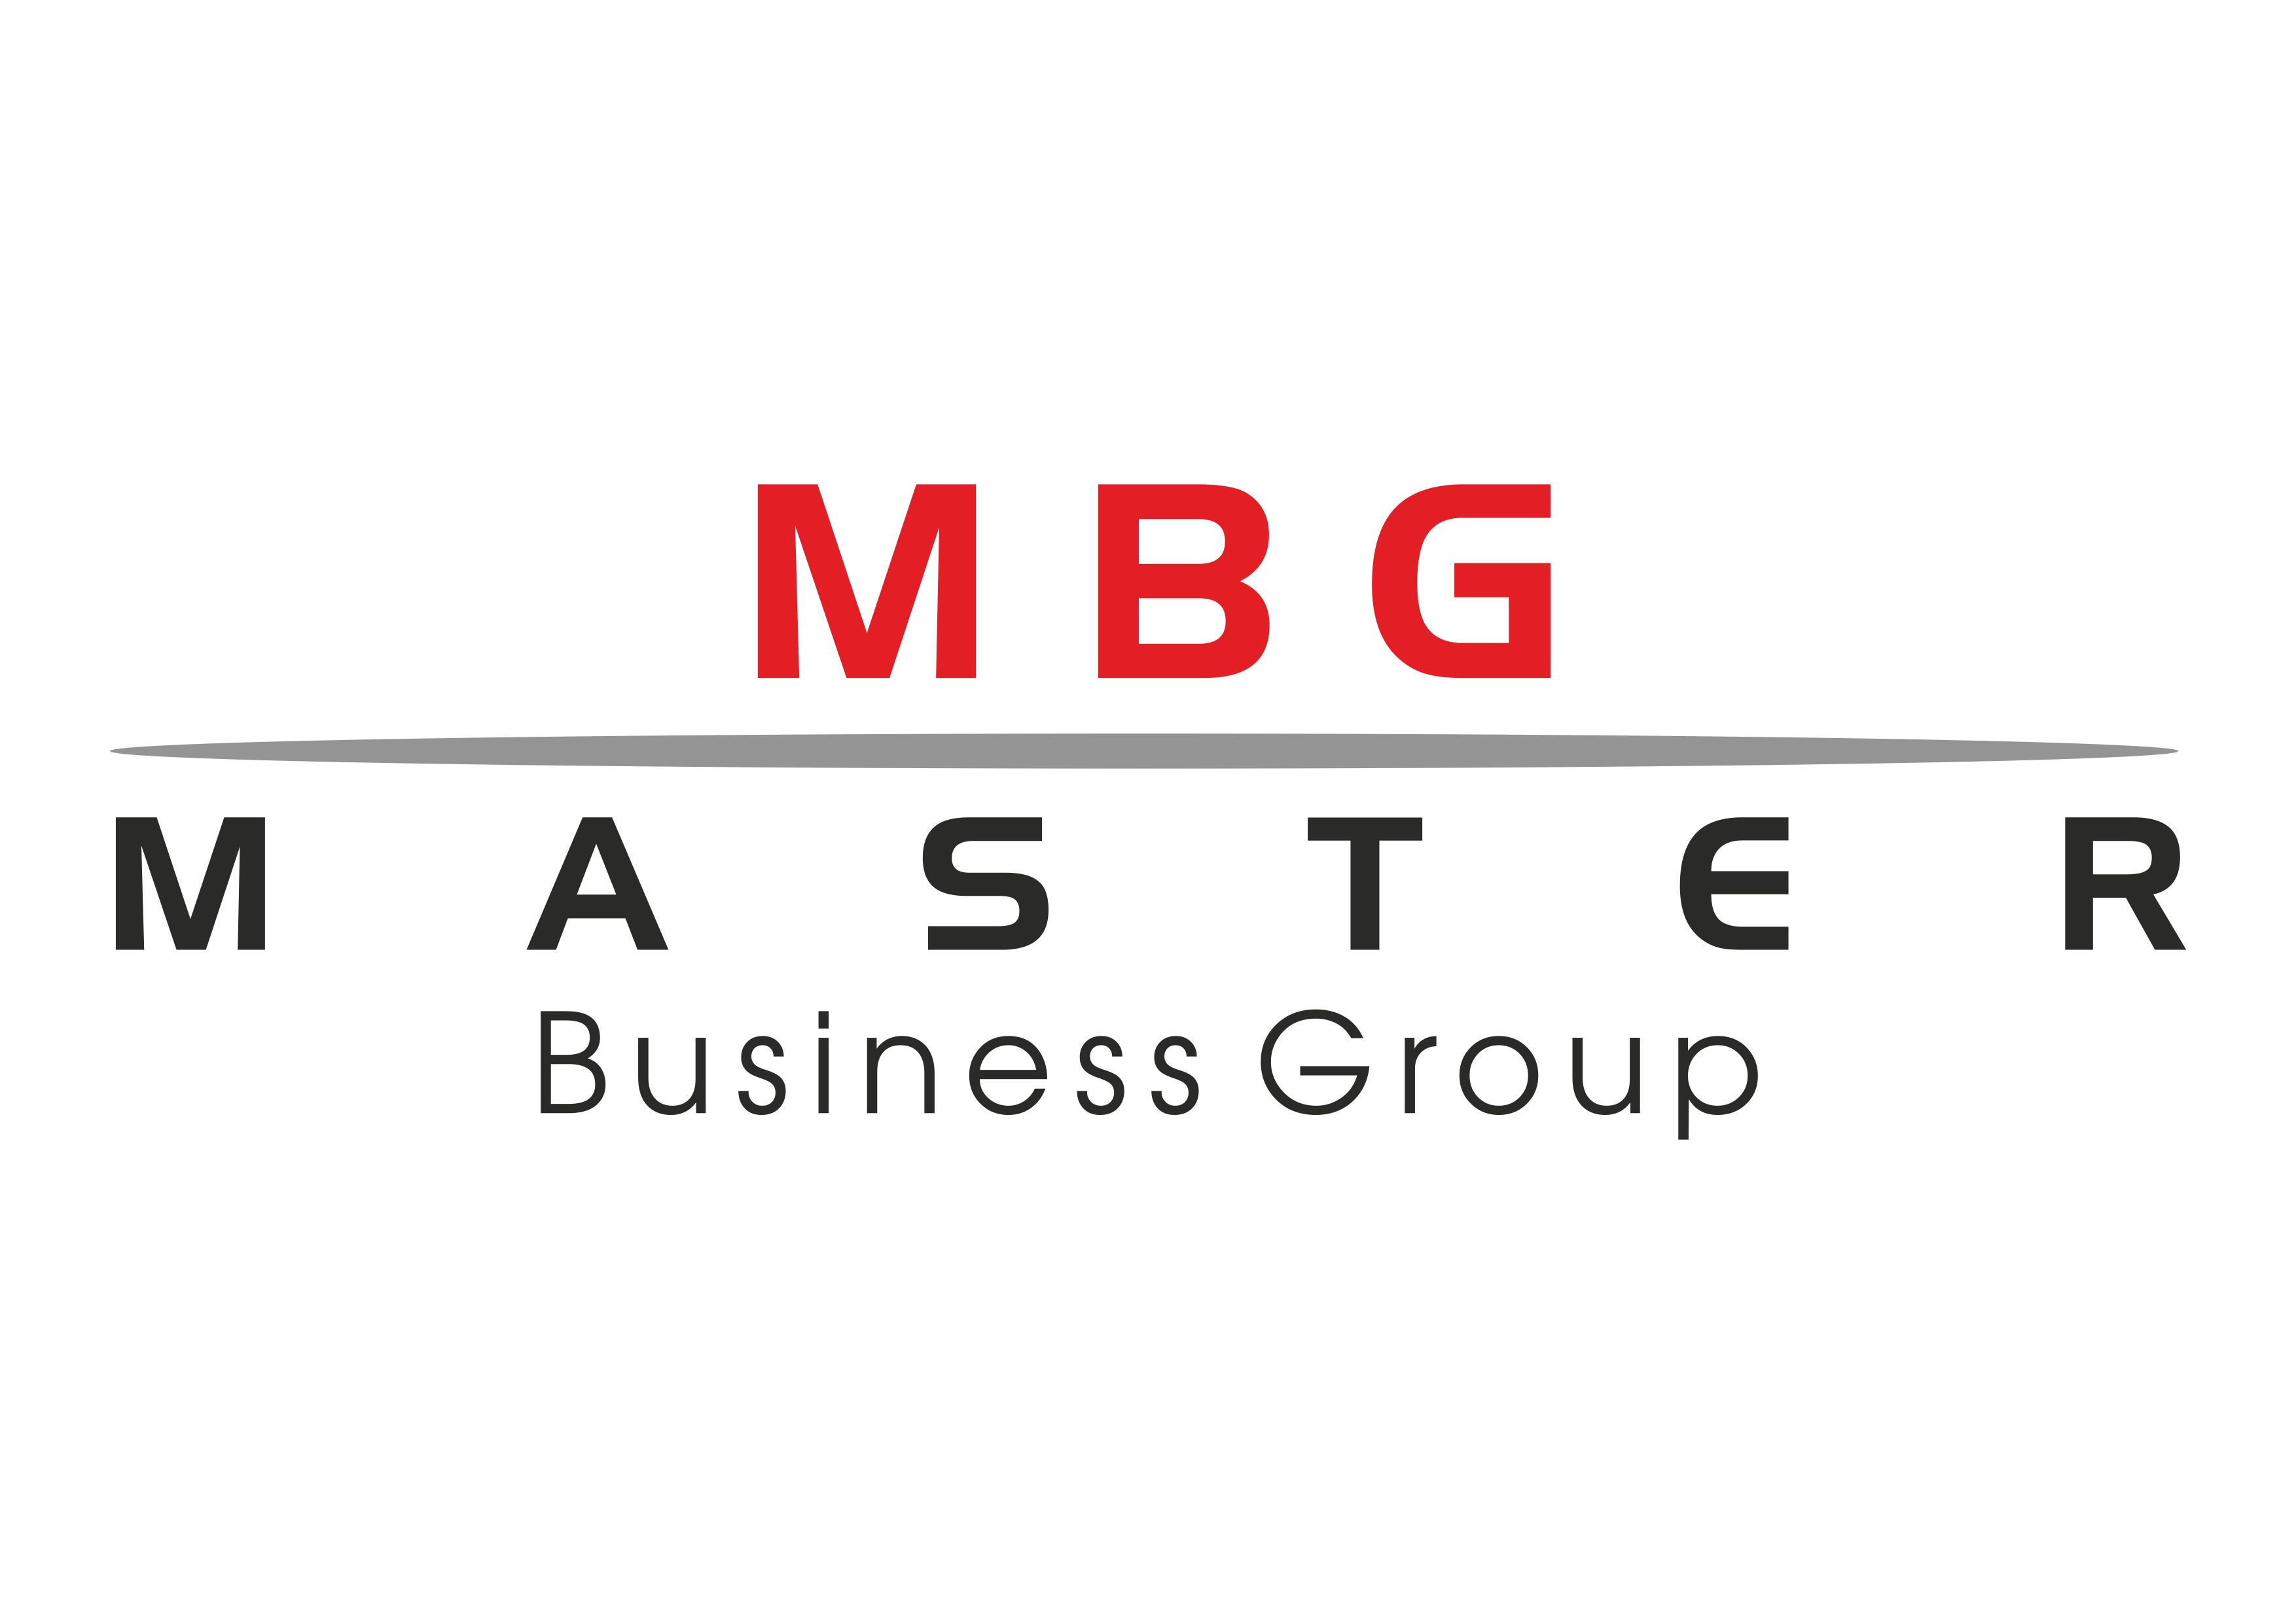 Master Business Group